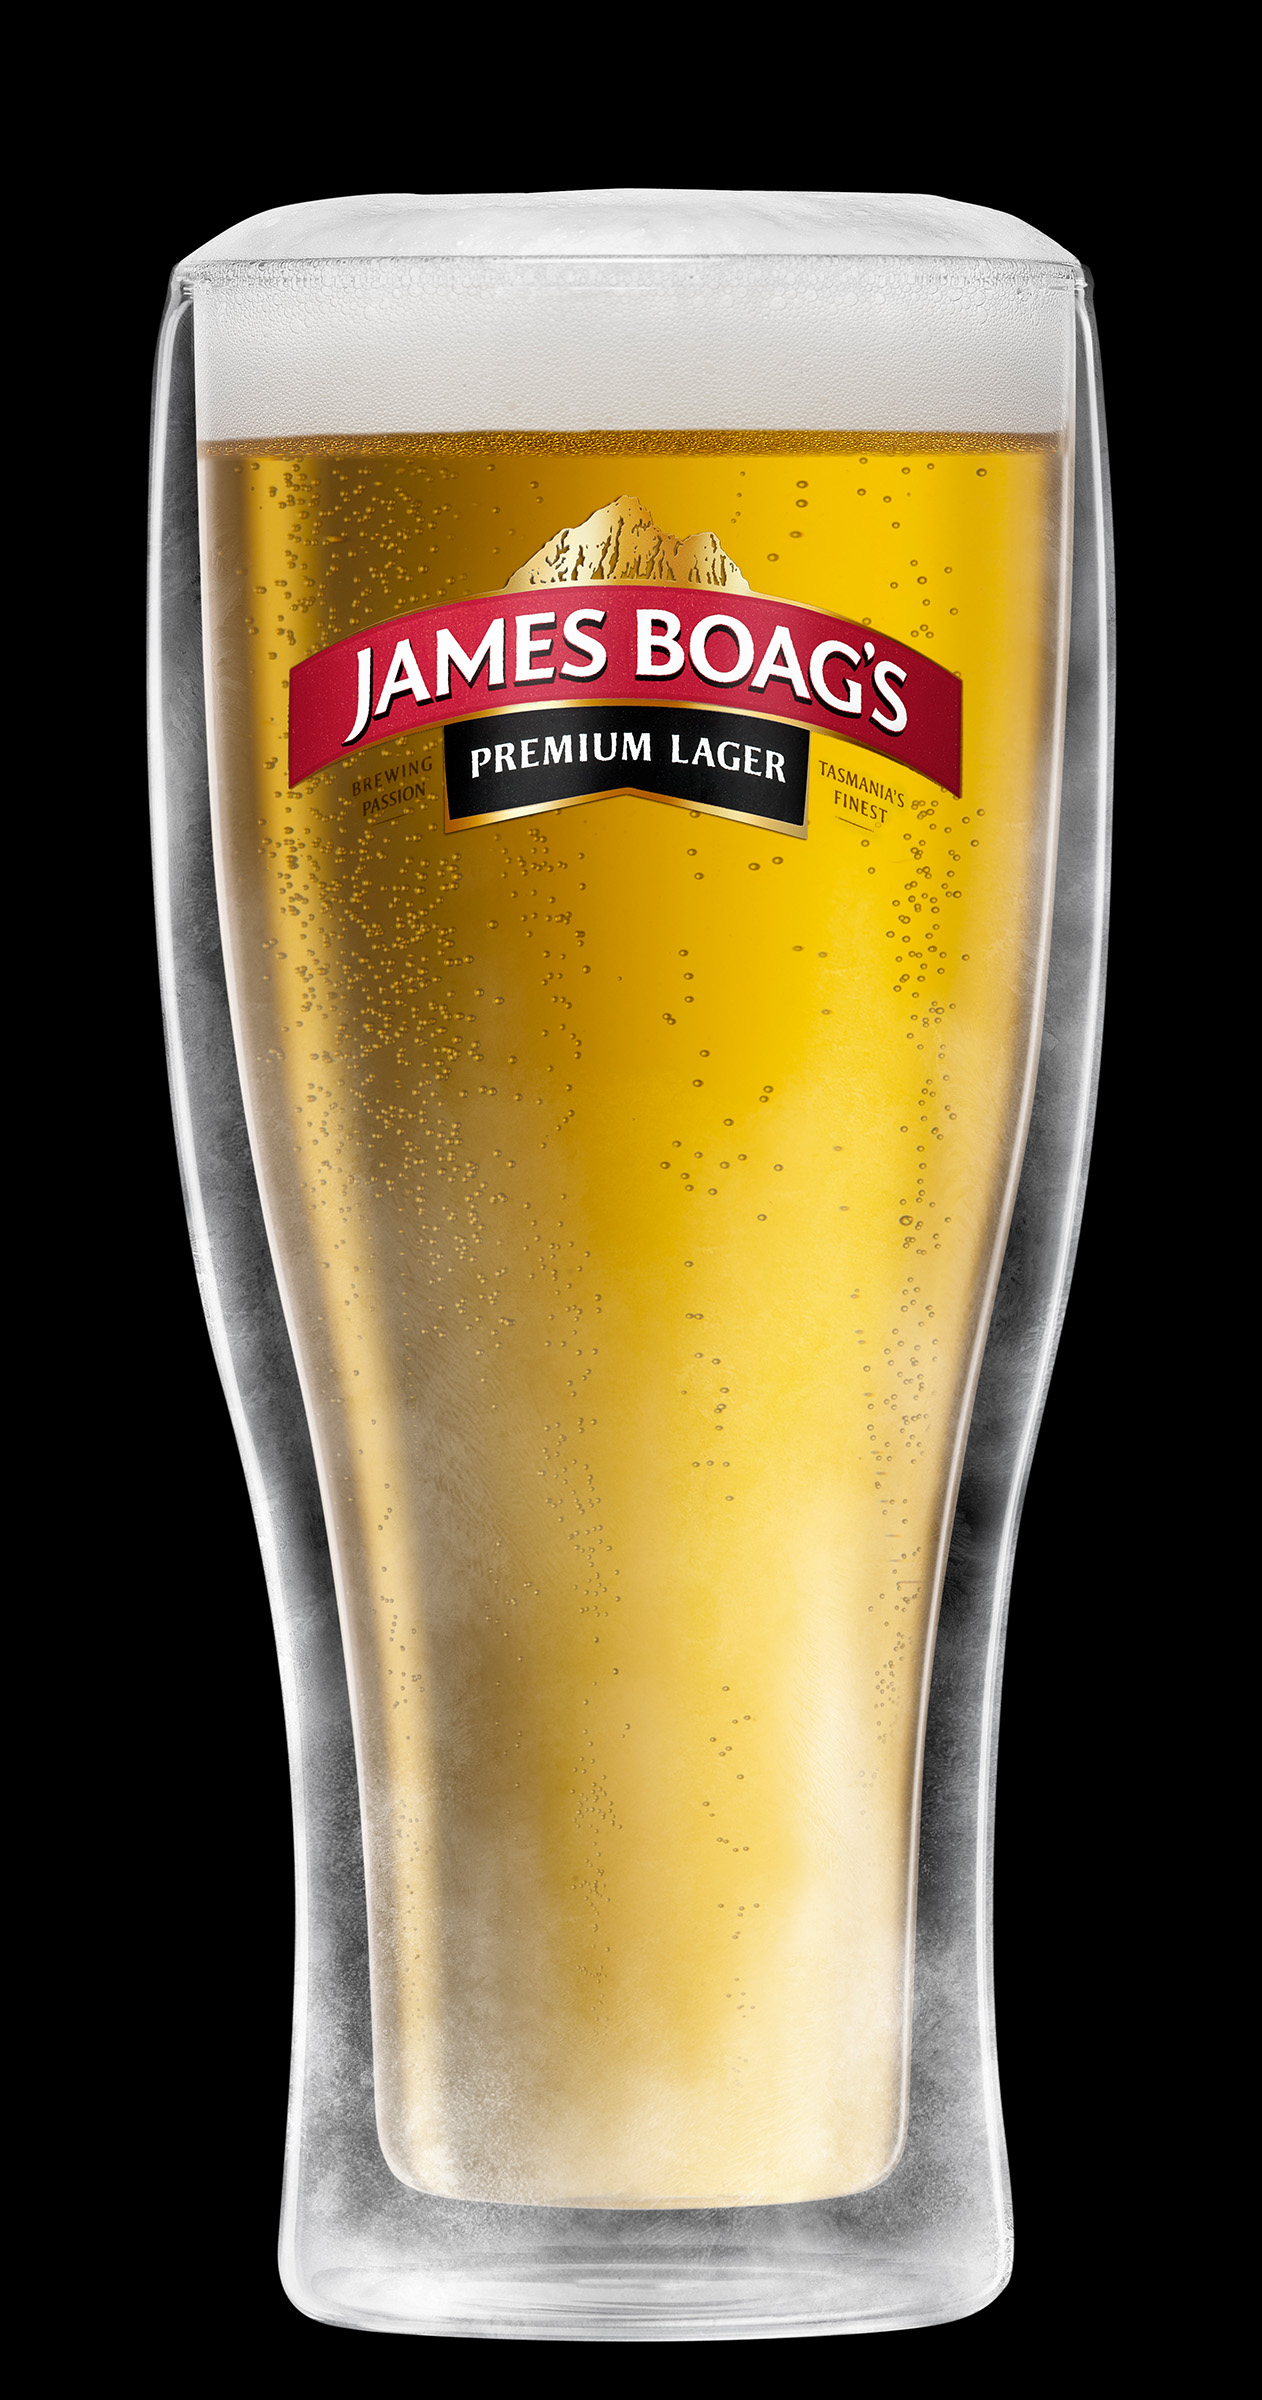 Advertising alcohol product studio photography of a schooner of James Boag's beer